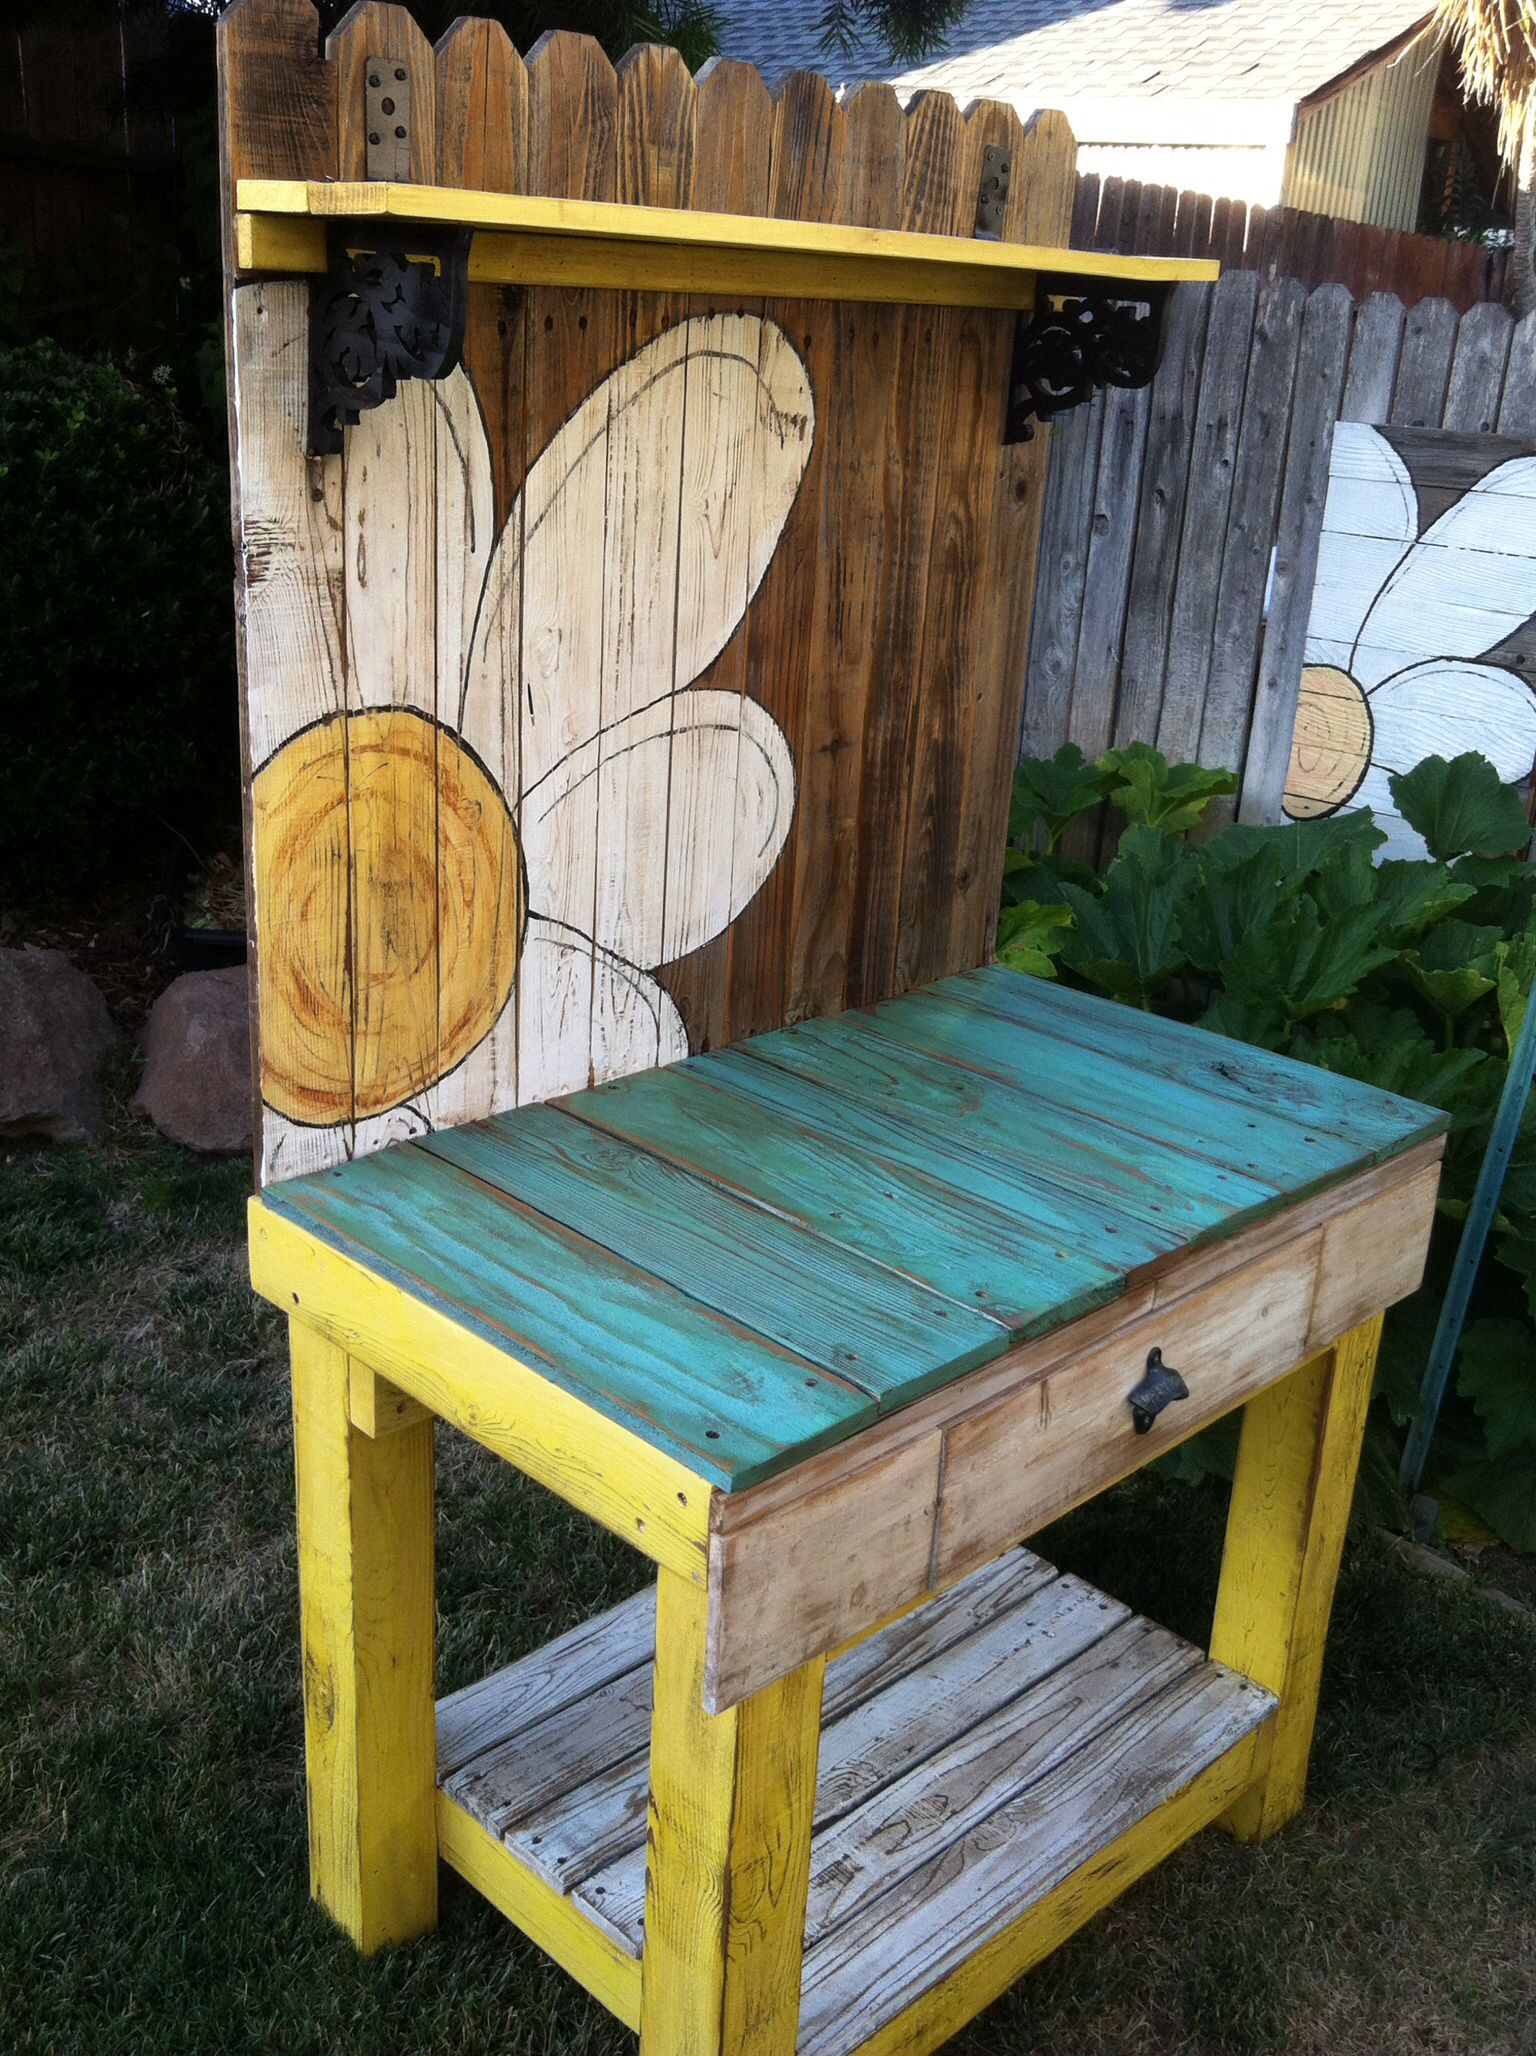 New bench form an old fence | fence boards | Pinterest | Fences ...